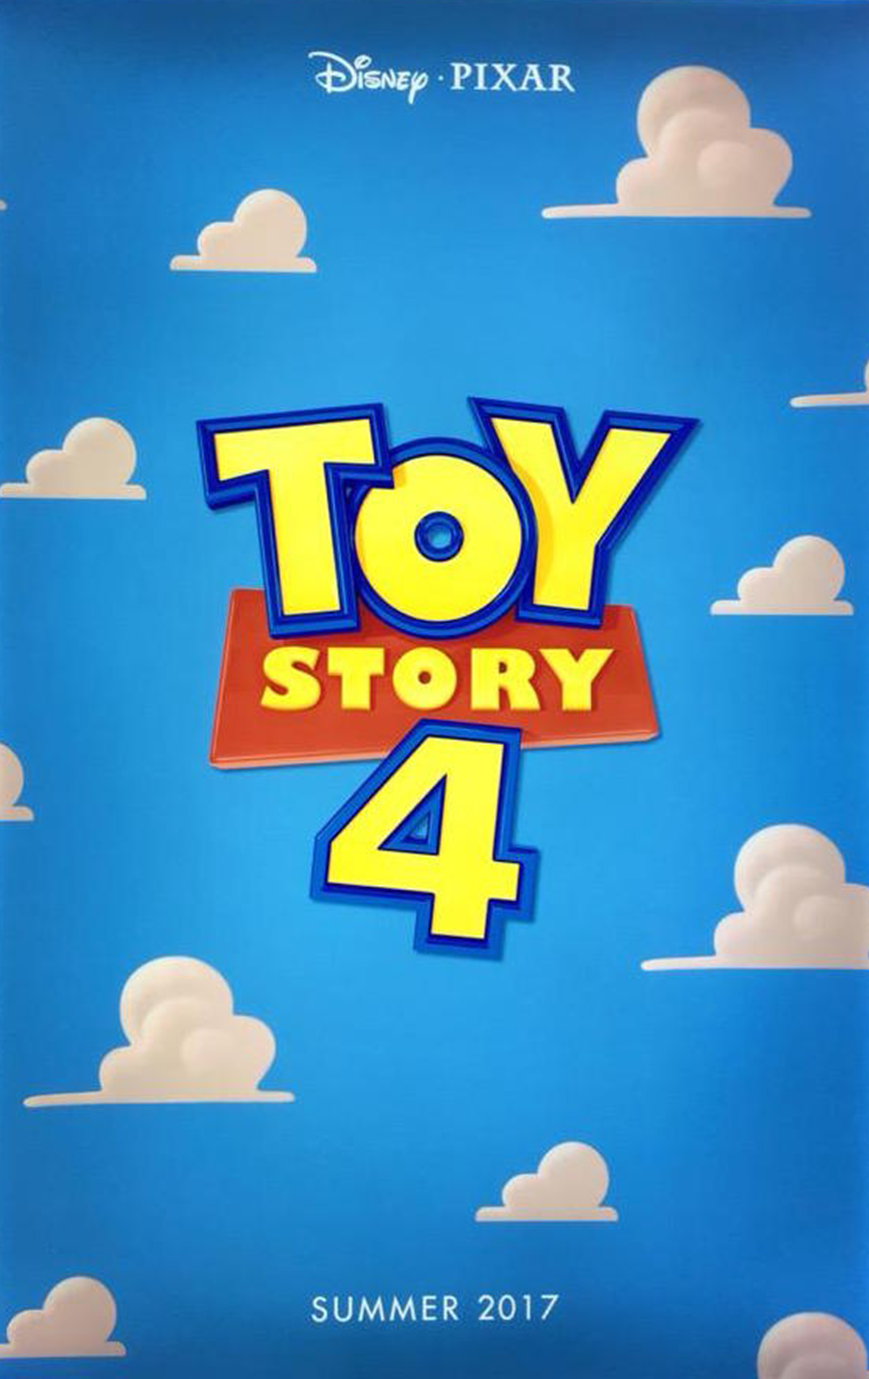 Toy Story Cracked Magazine: Pixar Corner: Pixar Gives Sneak Peek At 'Toy Story 4' At